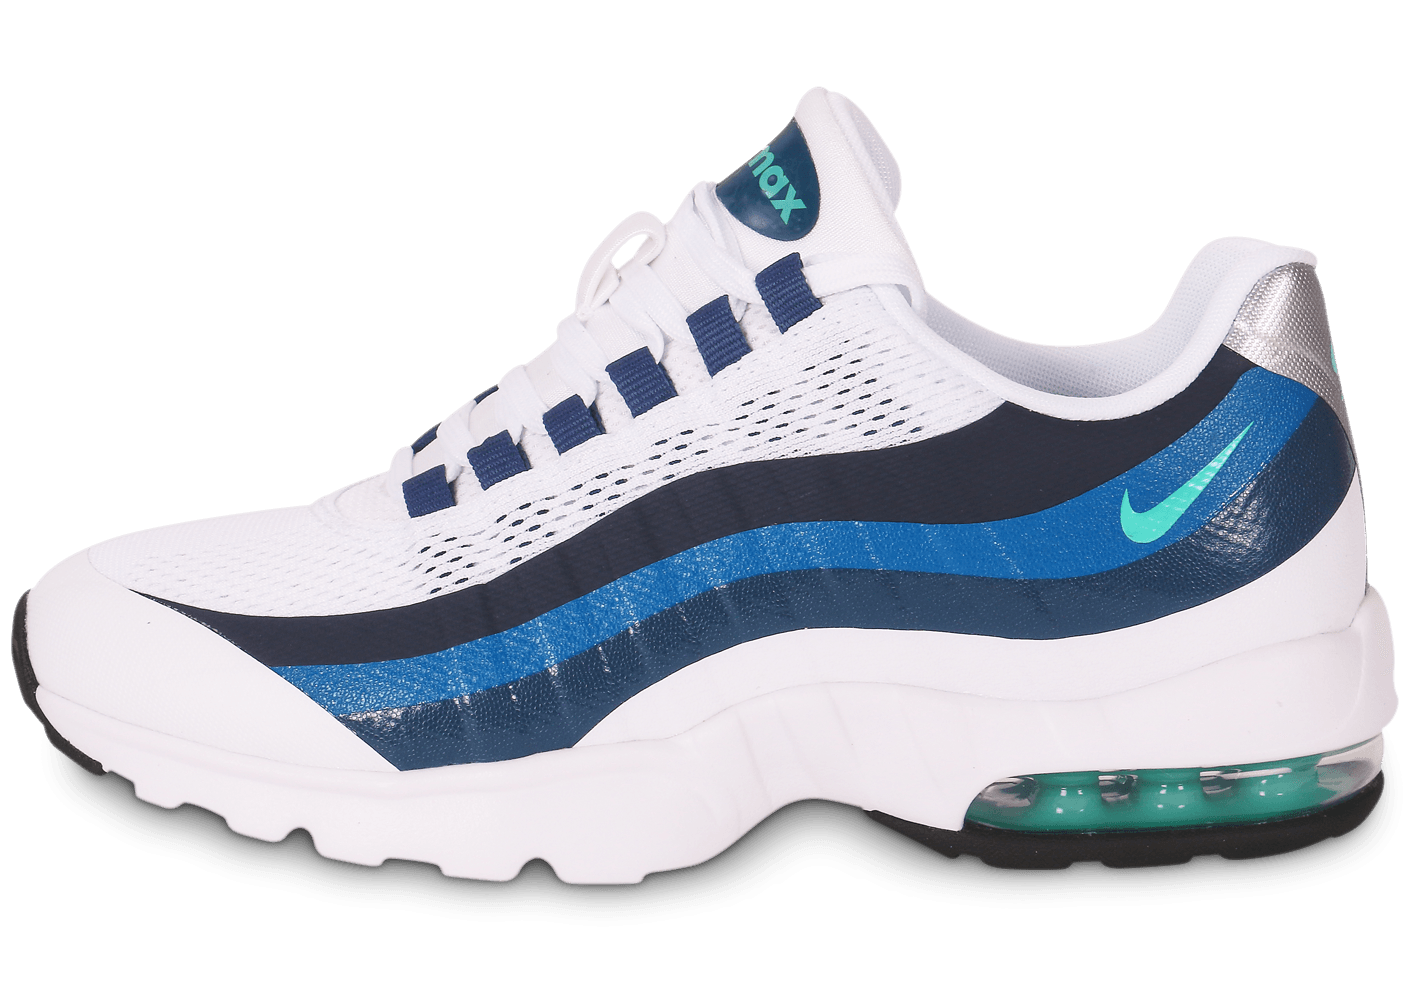 nike 5 gato especial - 9680-chaussures-nike-air-max-95-ultra-blanche-et-bleue-vue-exterieure.png